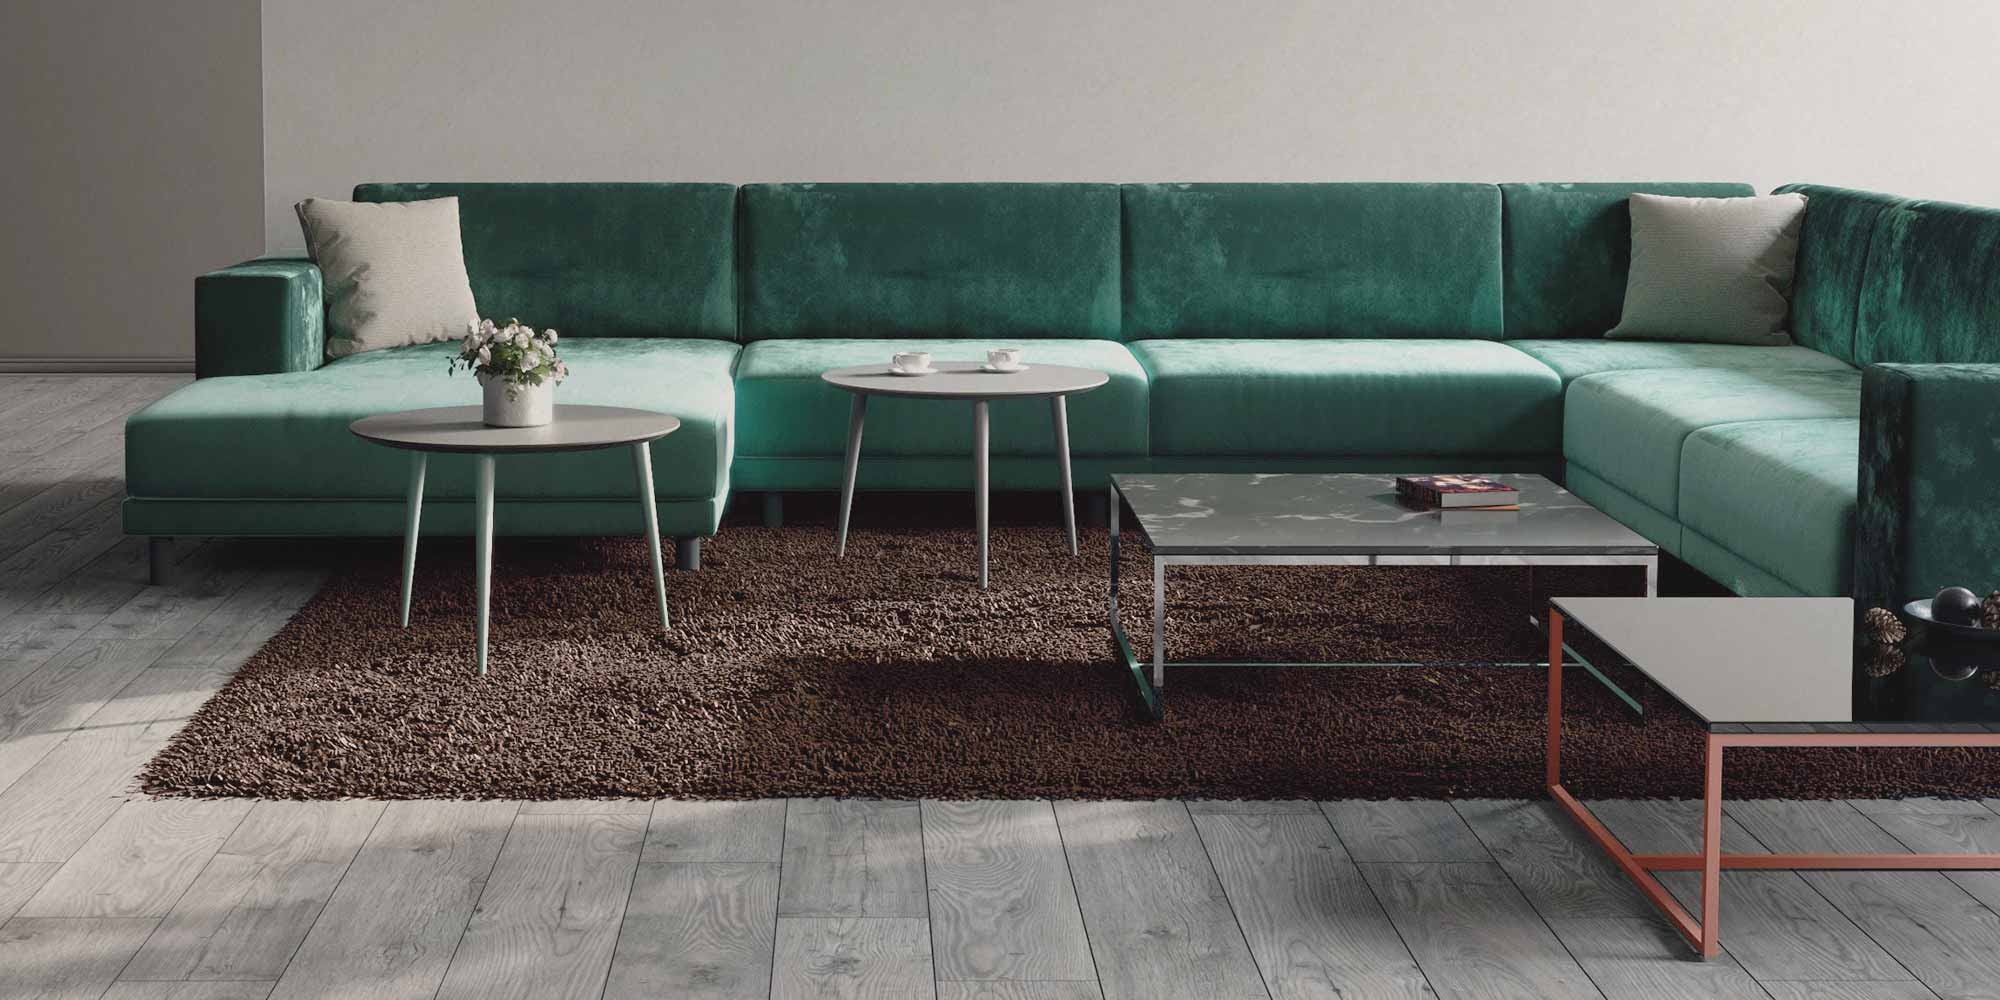 coffee tables in different shapes and sizes